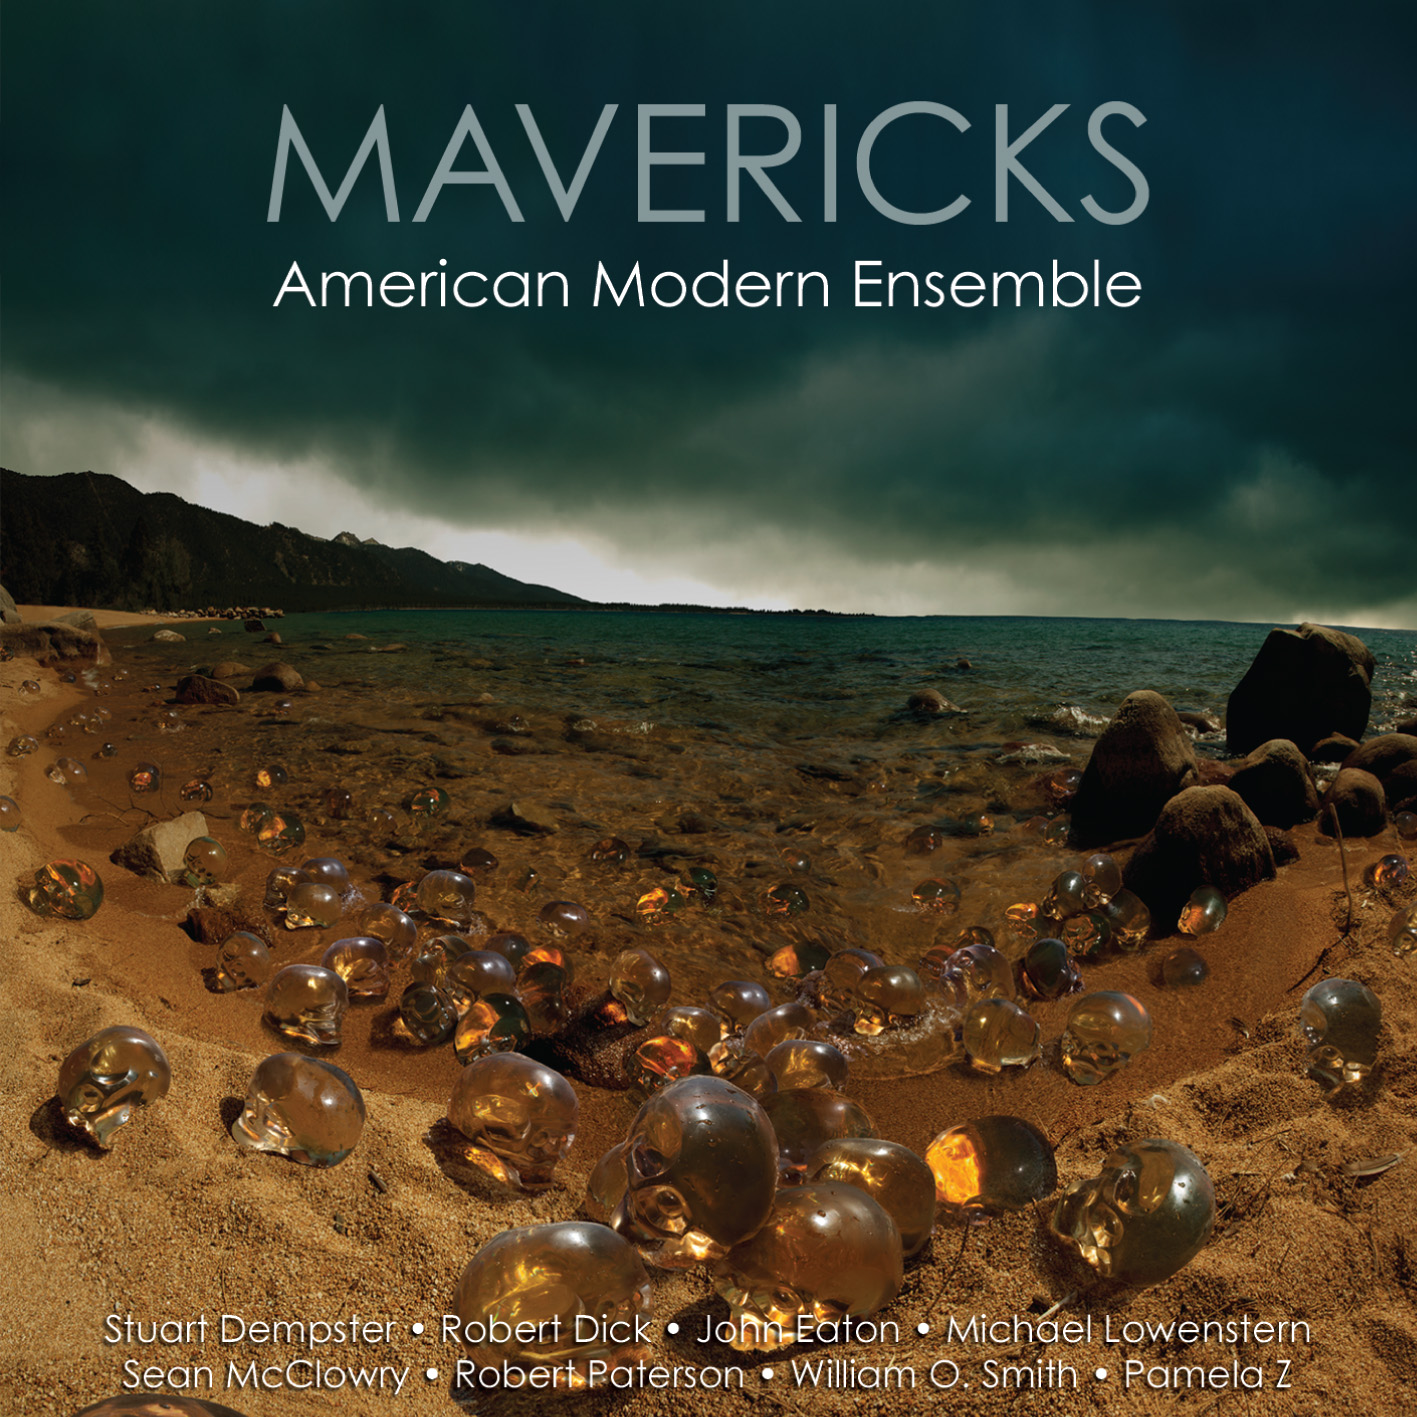 American Modern Ensemble - Mavericks